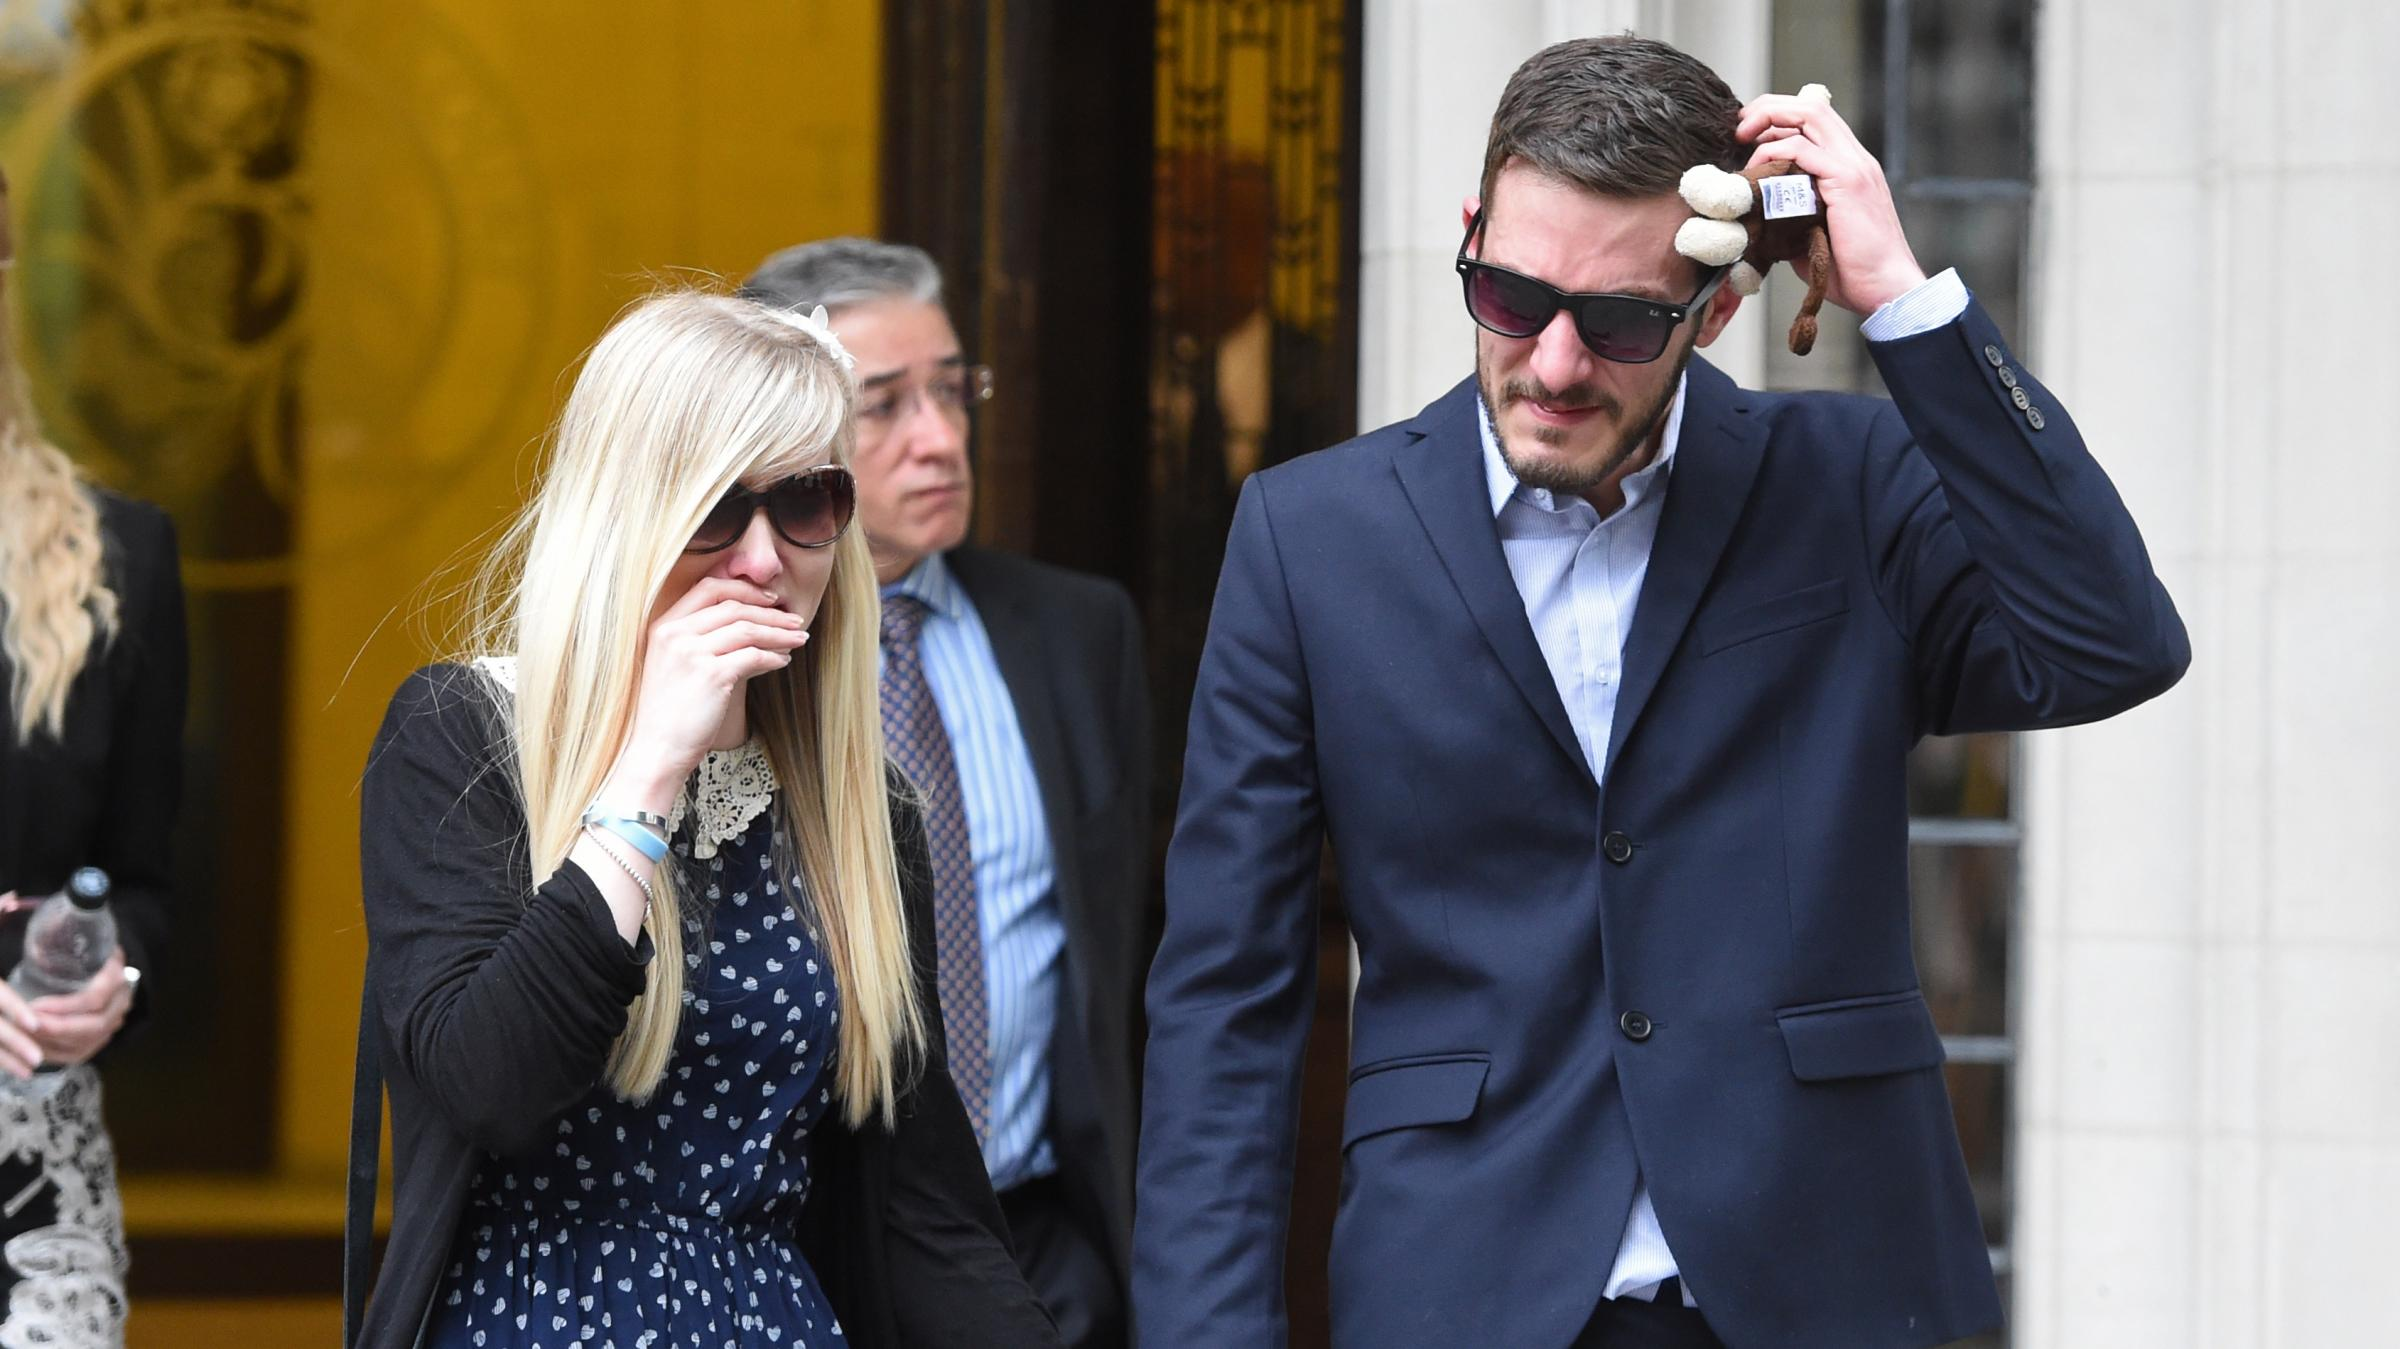 Charlie Gard's parents await decision from European Court of Human Rights